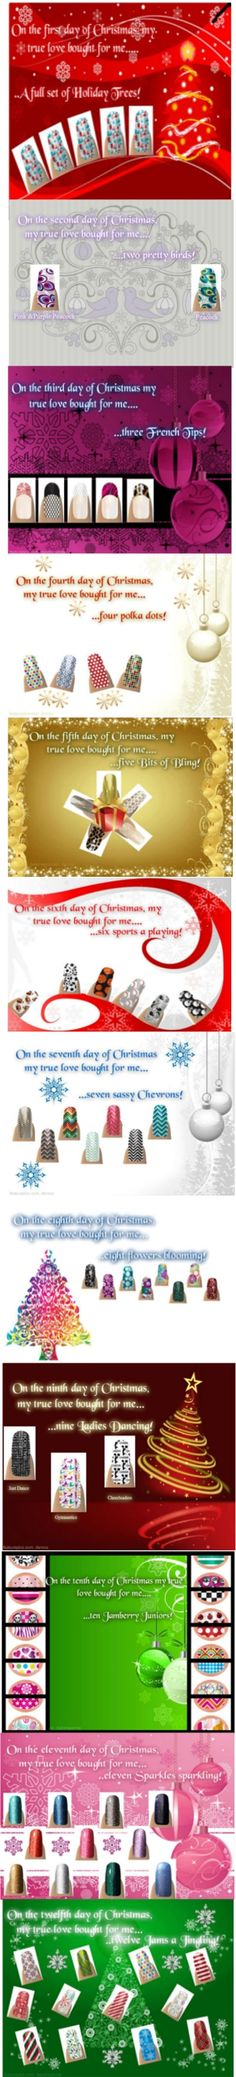 The 12 Days of Christmas Jamberry Style :) From my up-line Julie Wilson! Christmas Post, 12 Days Of Christmas, Christmas Holidays, Jamberry Nails Consultant, Jamberry Nail Wraps, Net Fashion, Style Fashion, Jamberry Facebook Party, Julie Wilson